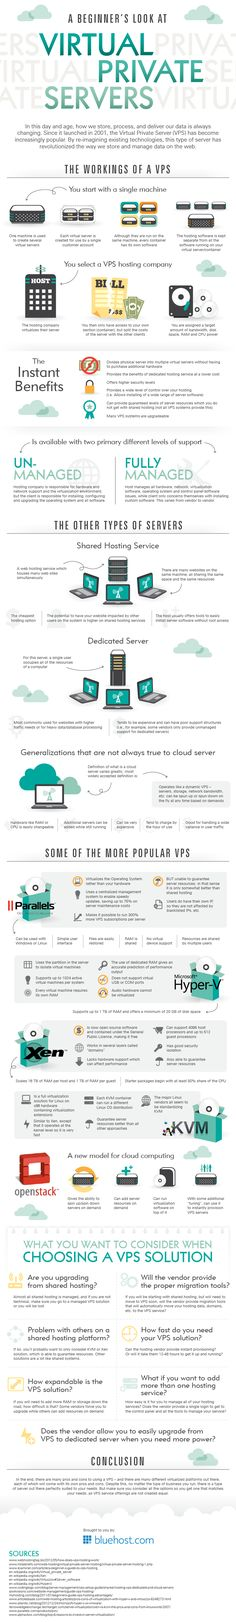 A Beginners Look At Virtual Private Servers | Infographics Display